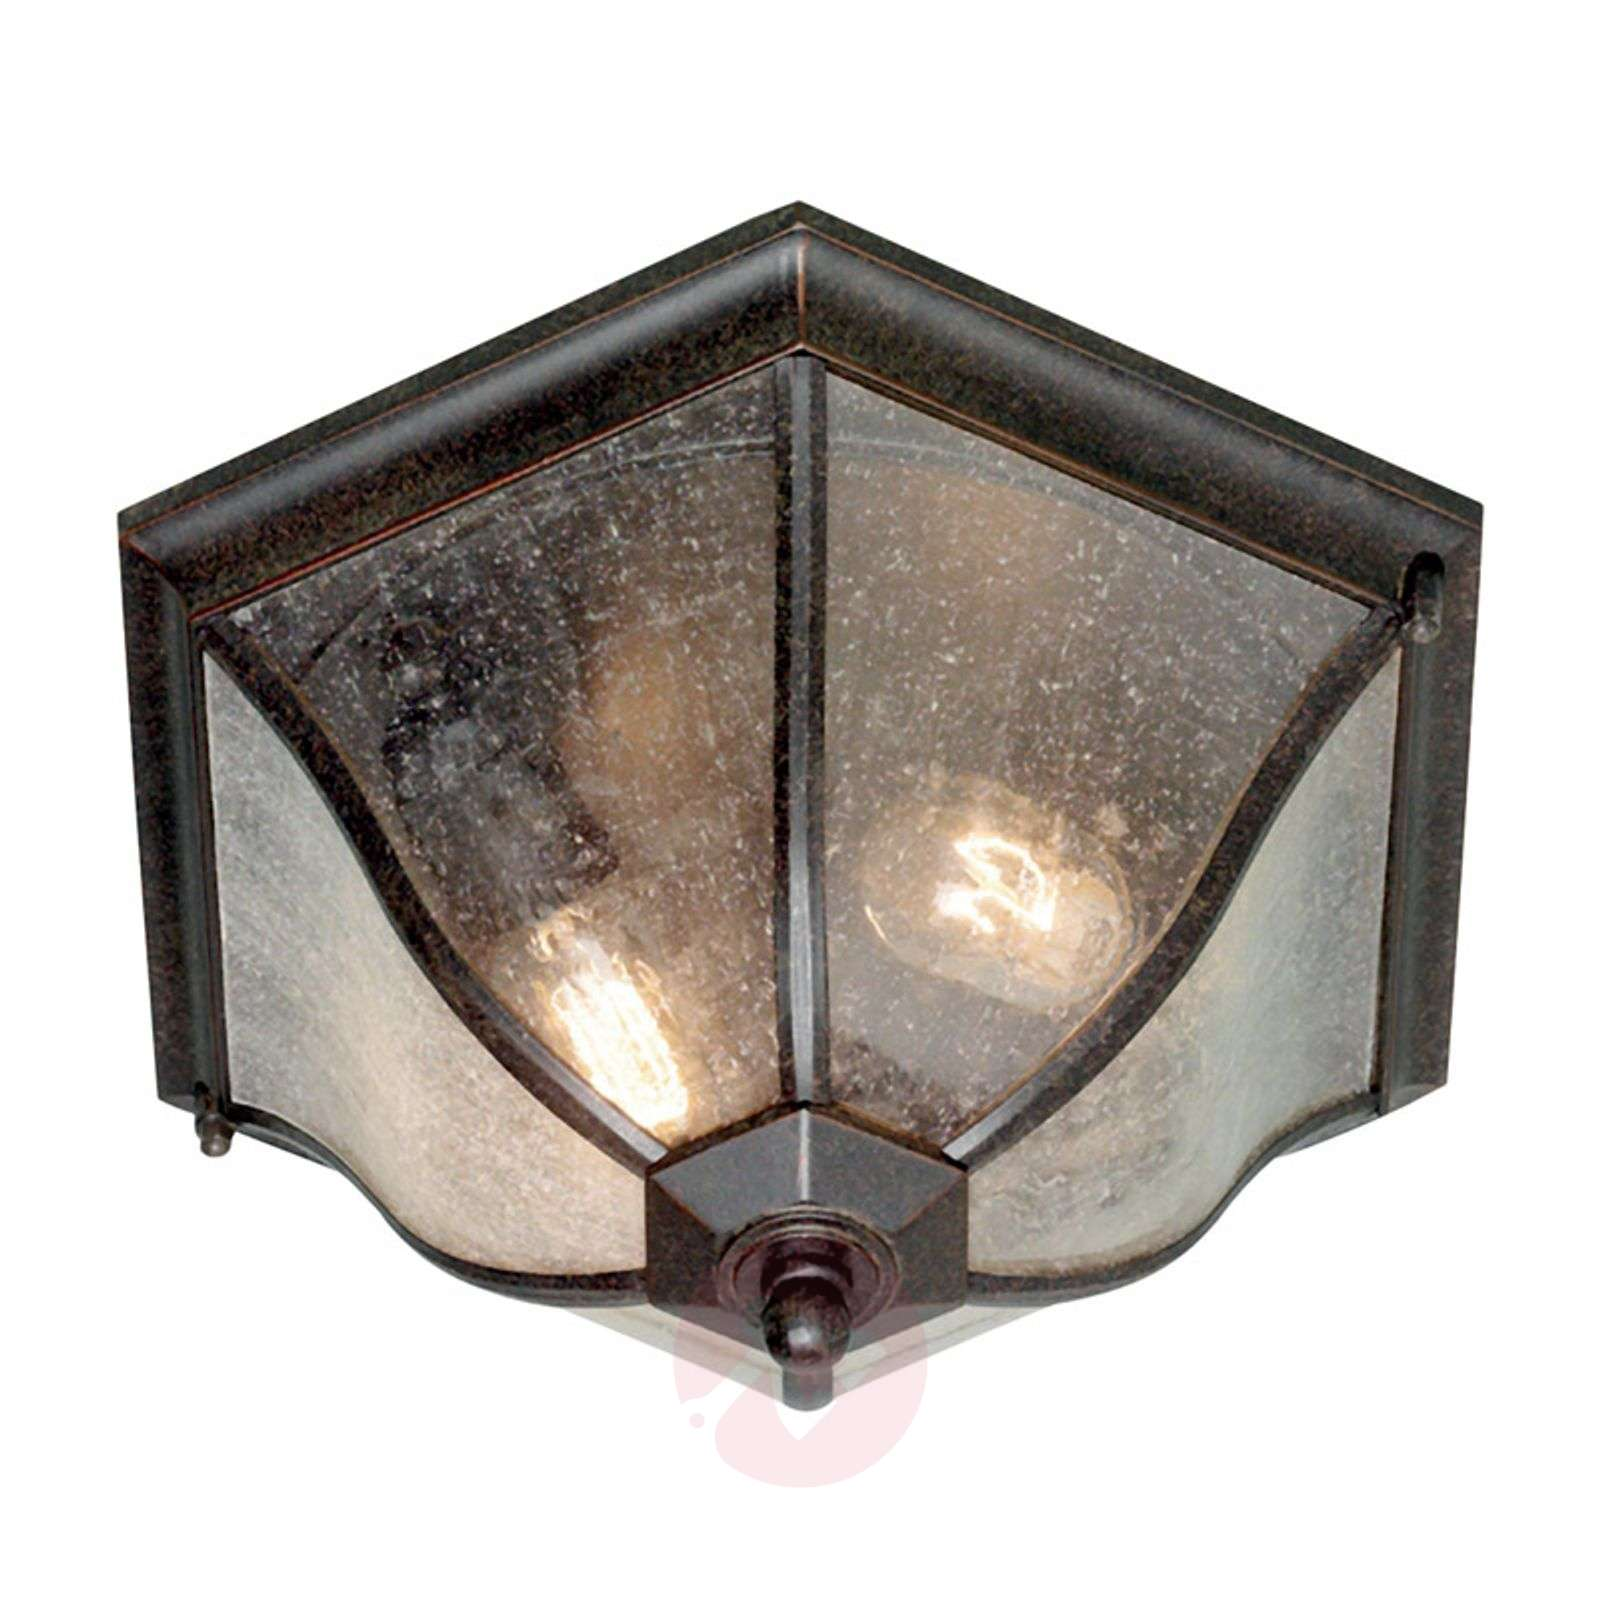 Bronze-coloured outdoor ceiling lamp New England-3048373-01